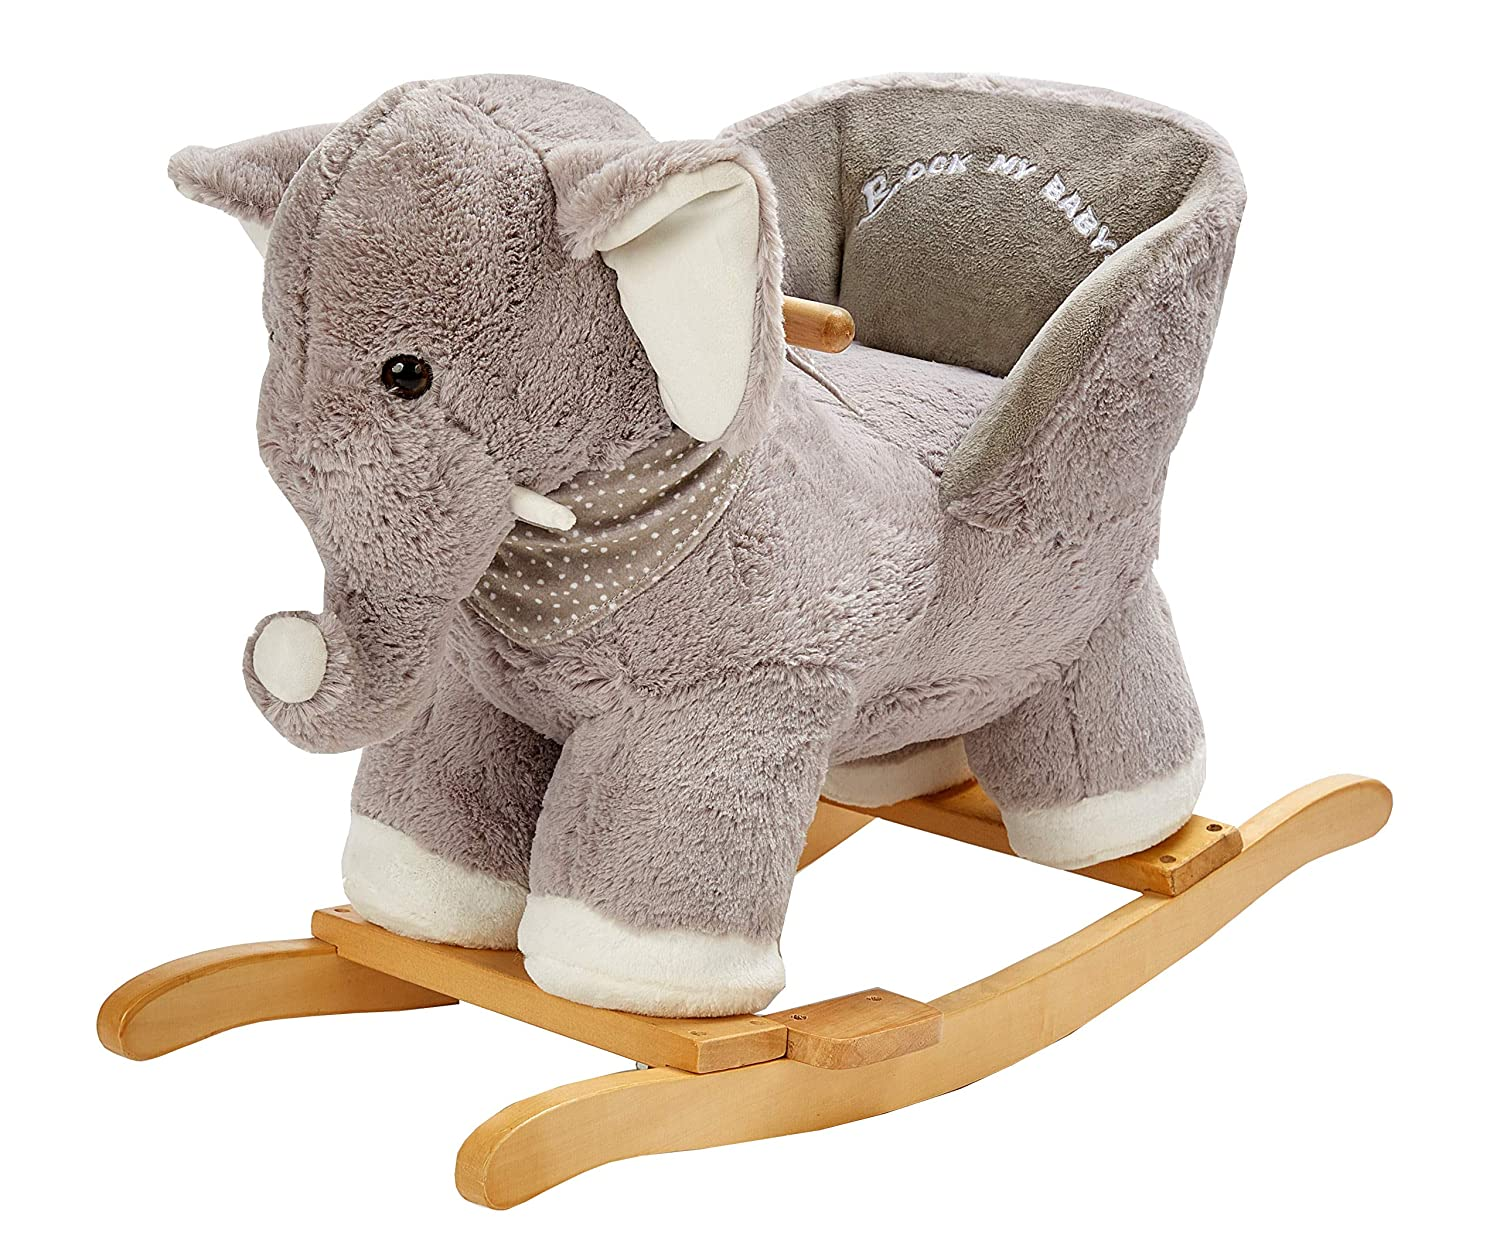 Fine Rock My Baby Baby Rocking Horse Elephant With Chair Plush Stuffed Rocking Animals Wooden Rocking Toy Horse Baby Rocker Animal Ride On Home Decor For Gmtry Best Dining Table And Chair Ideas Images Gmtryco